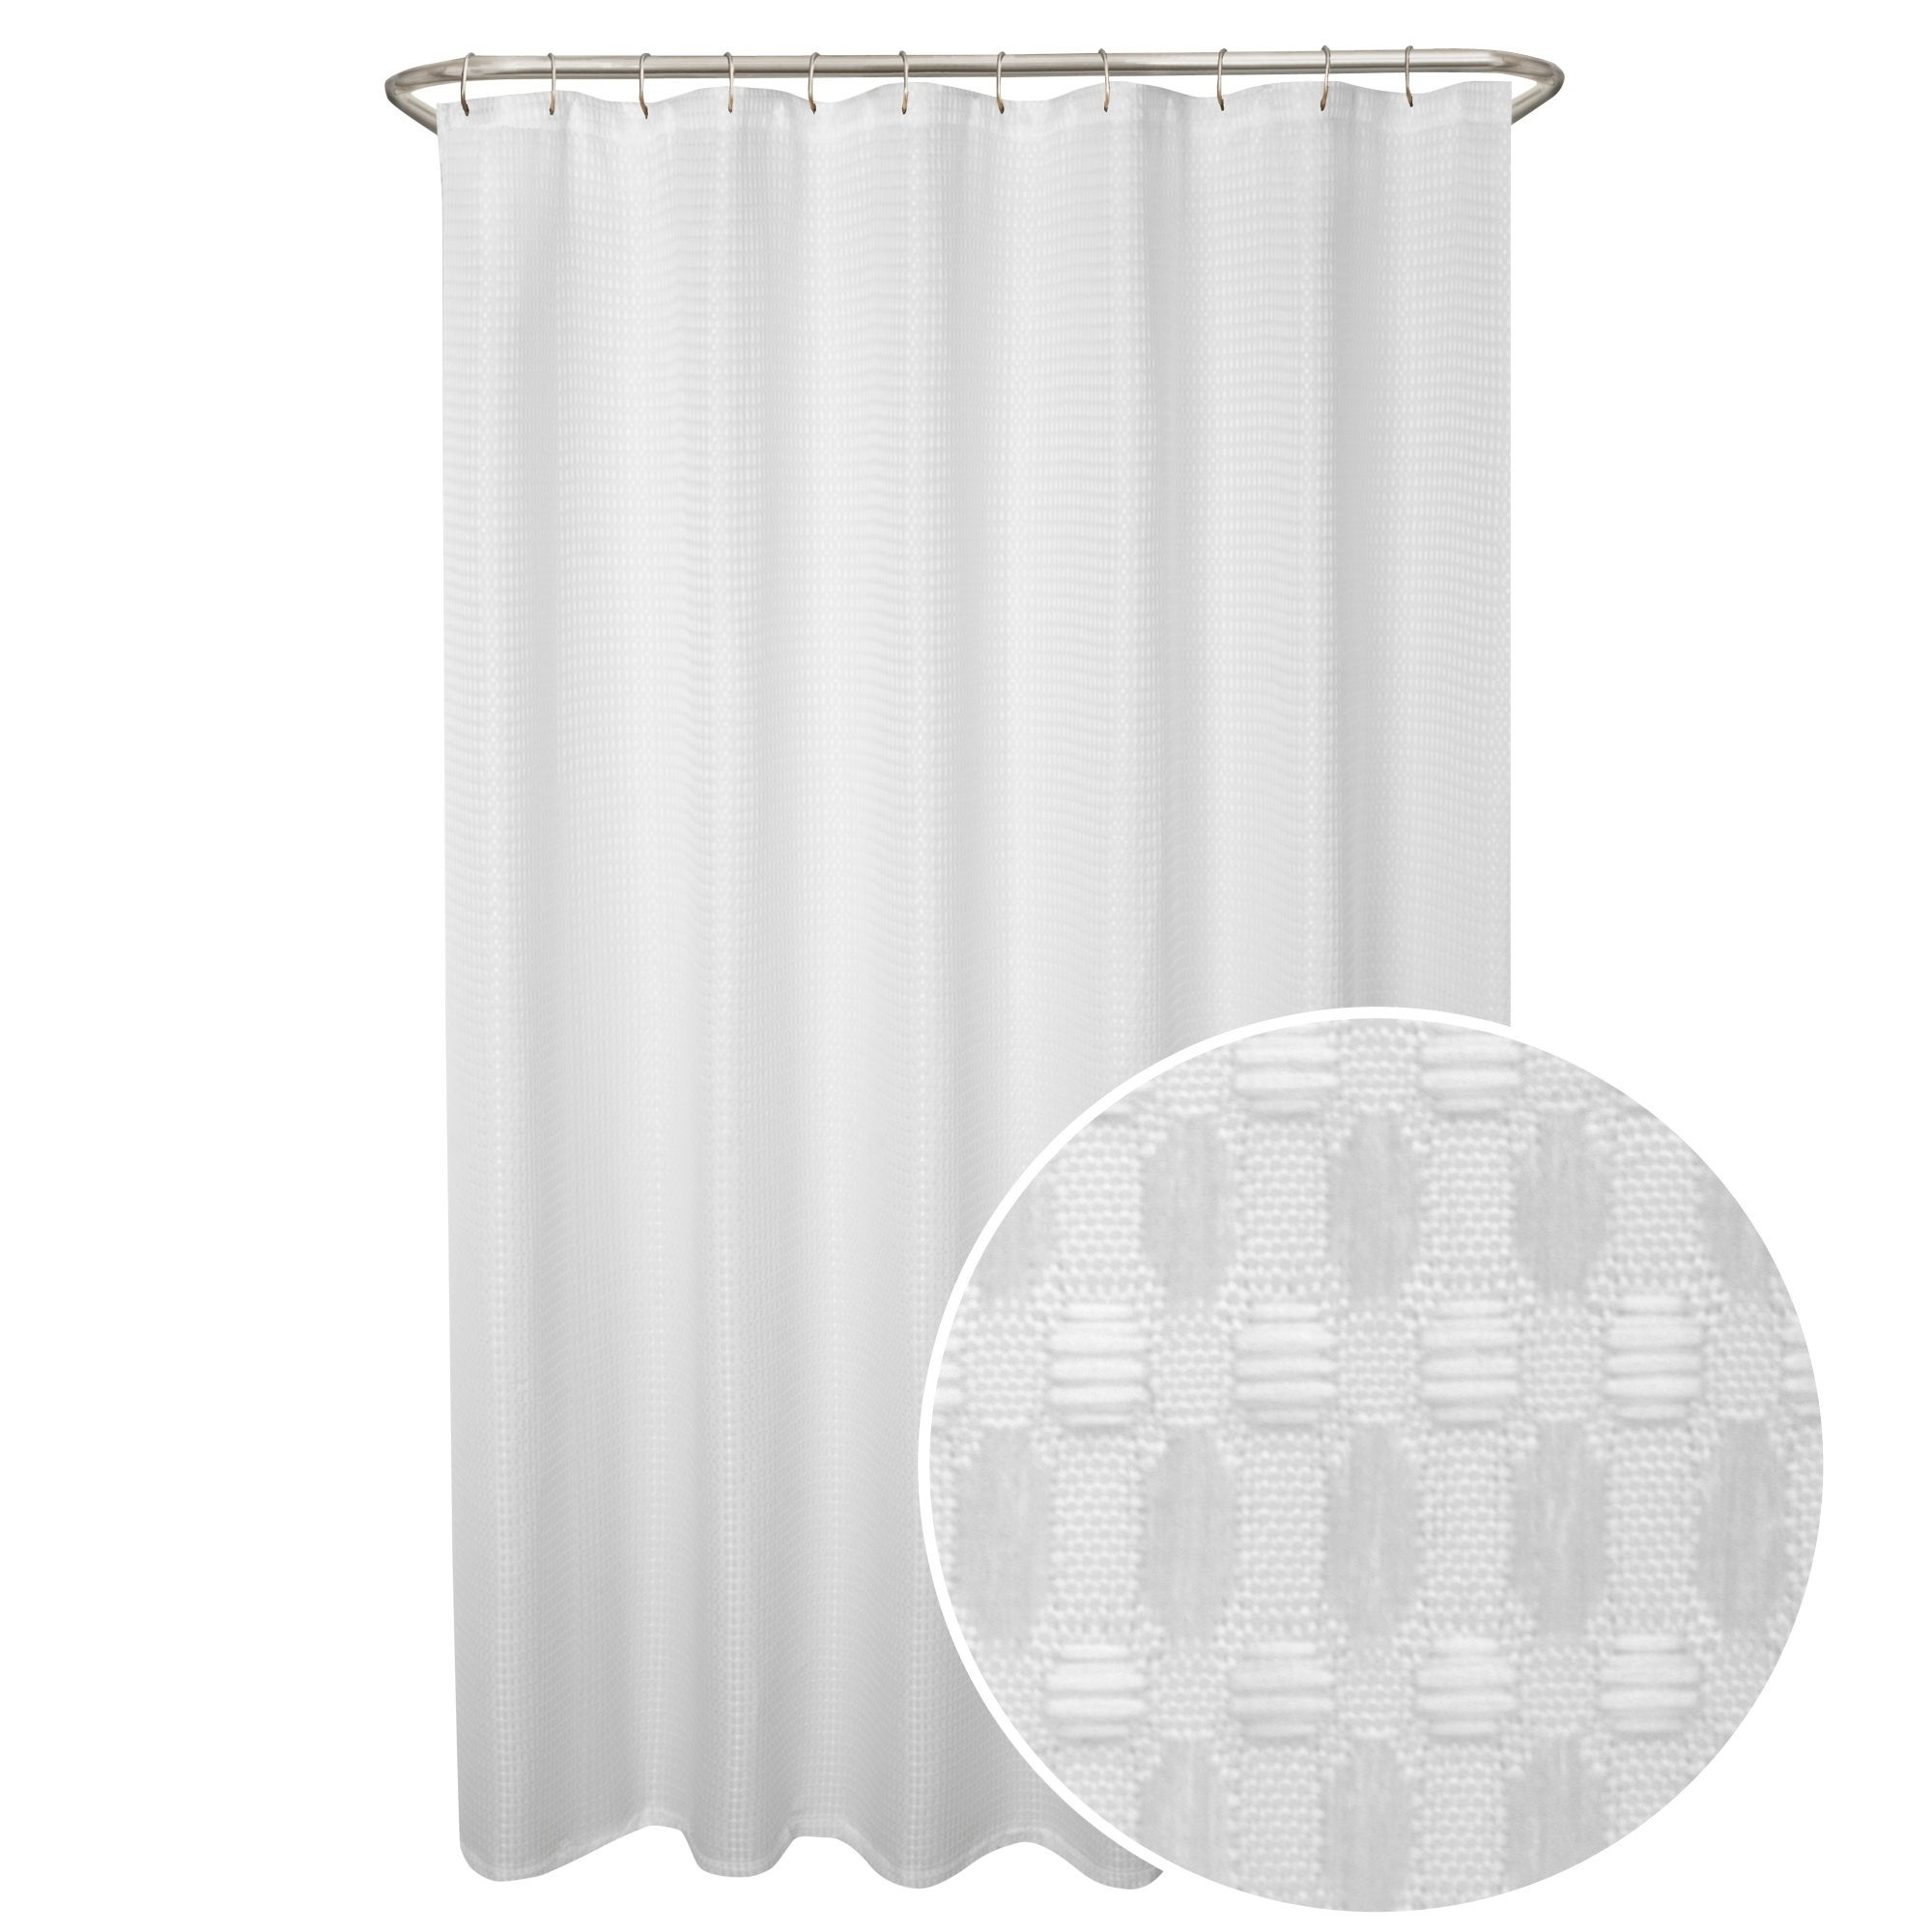 Maytex Stevenson Waffle Fabric Shower Curtain